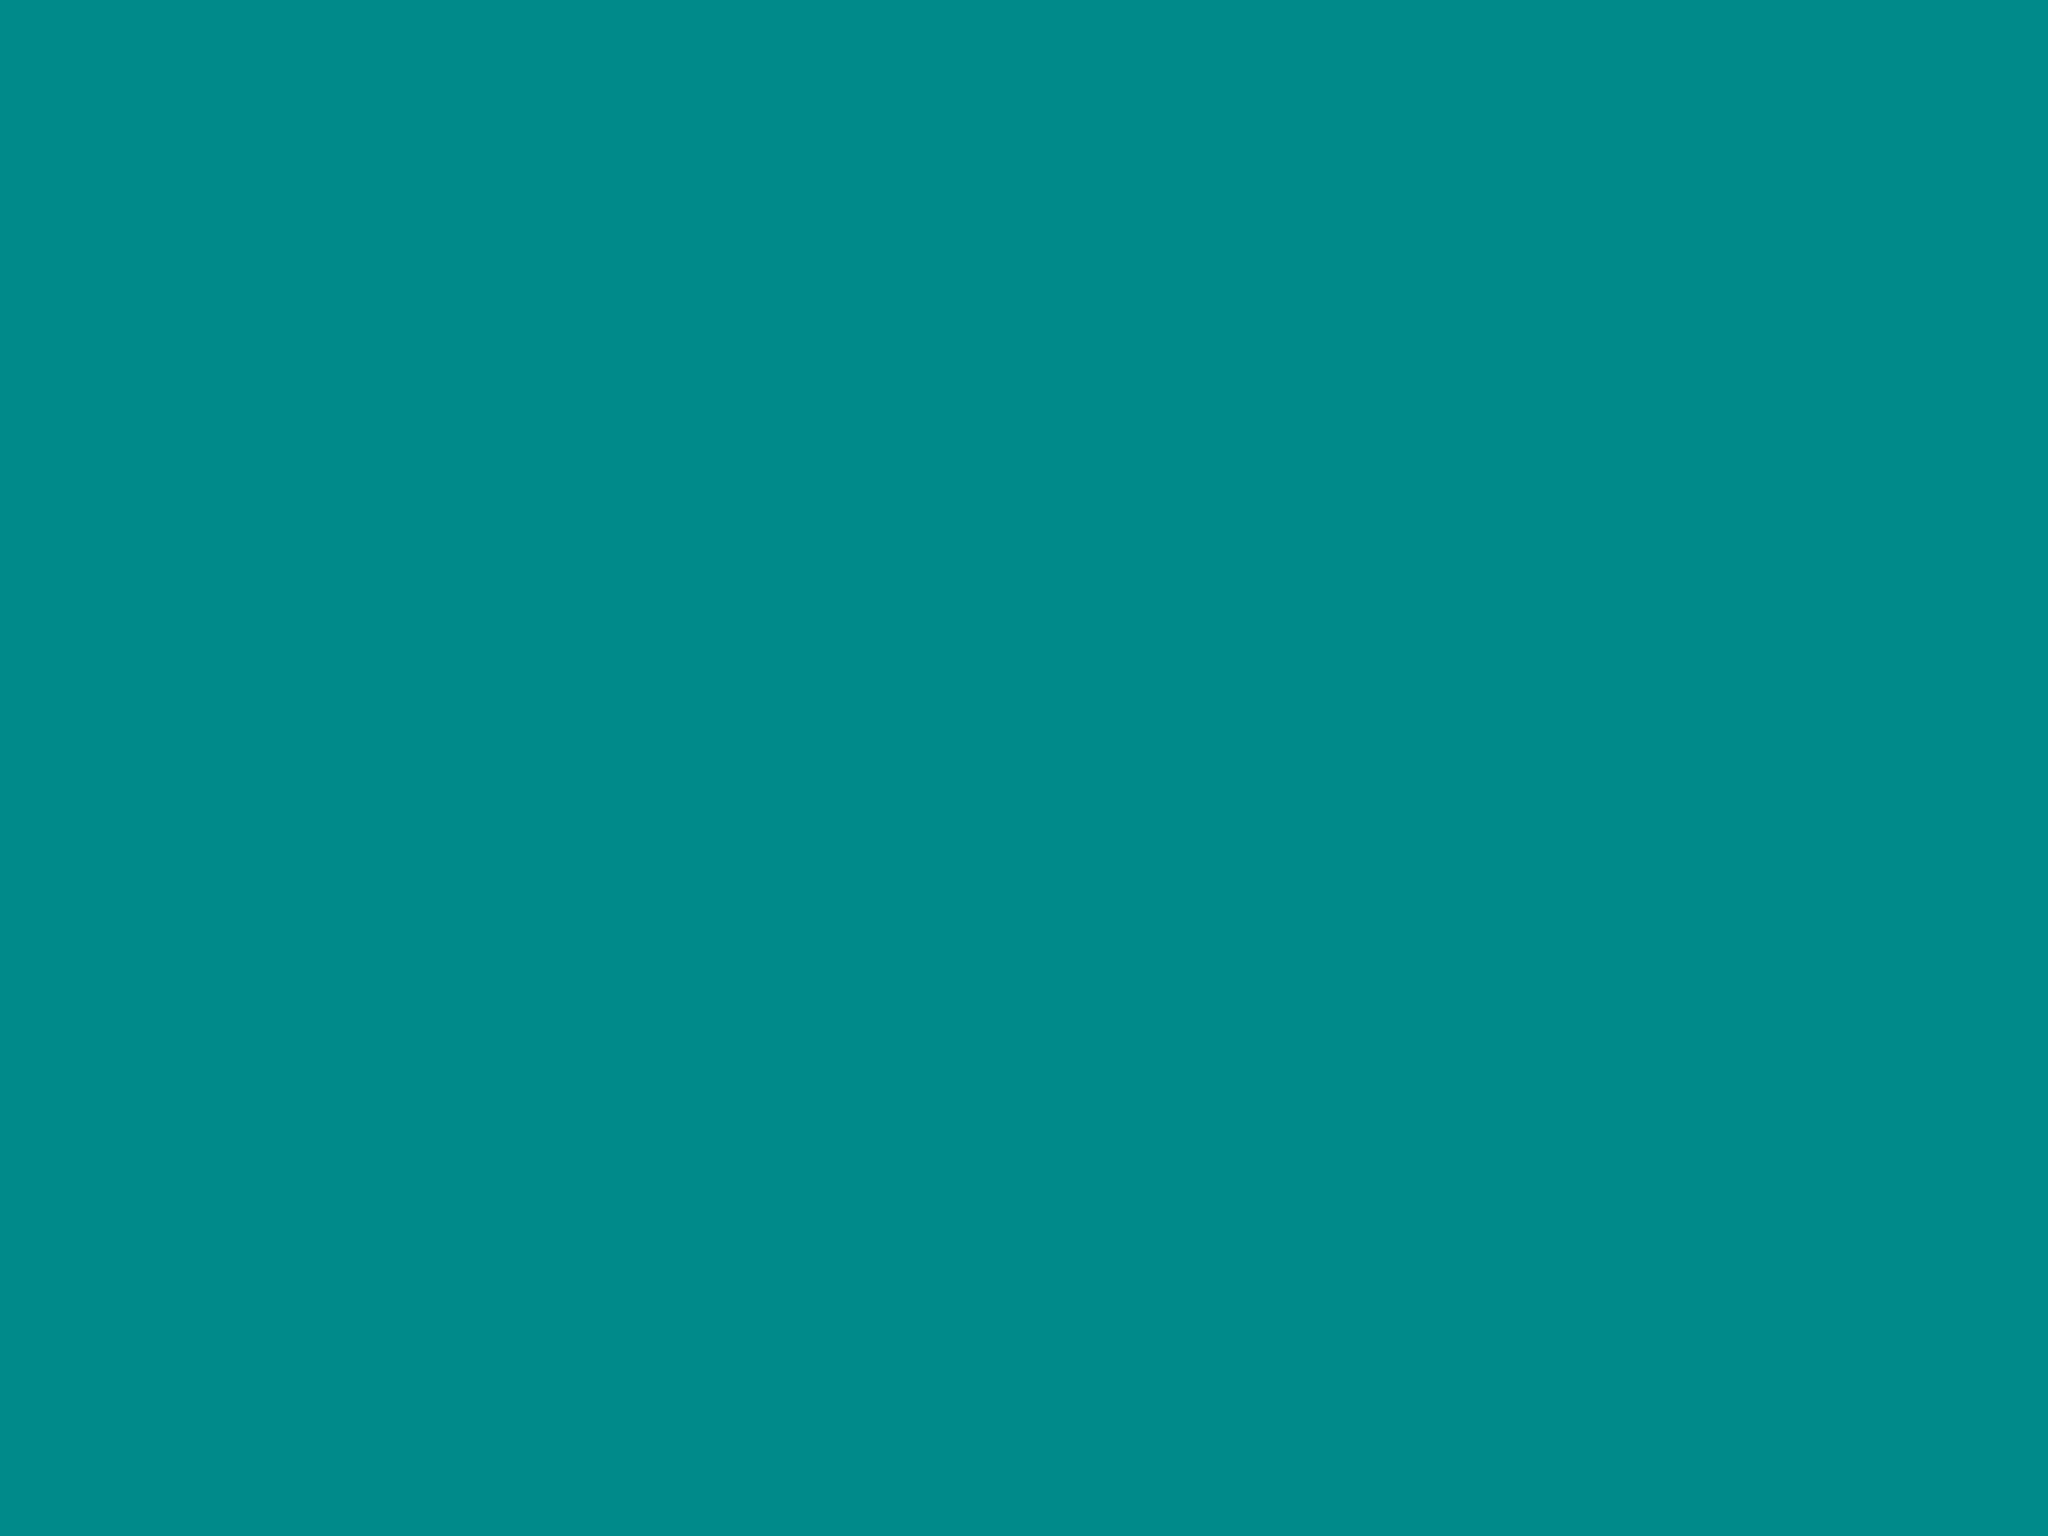 2048x1536 Dark Cyan Solid Color Background